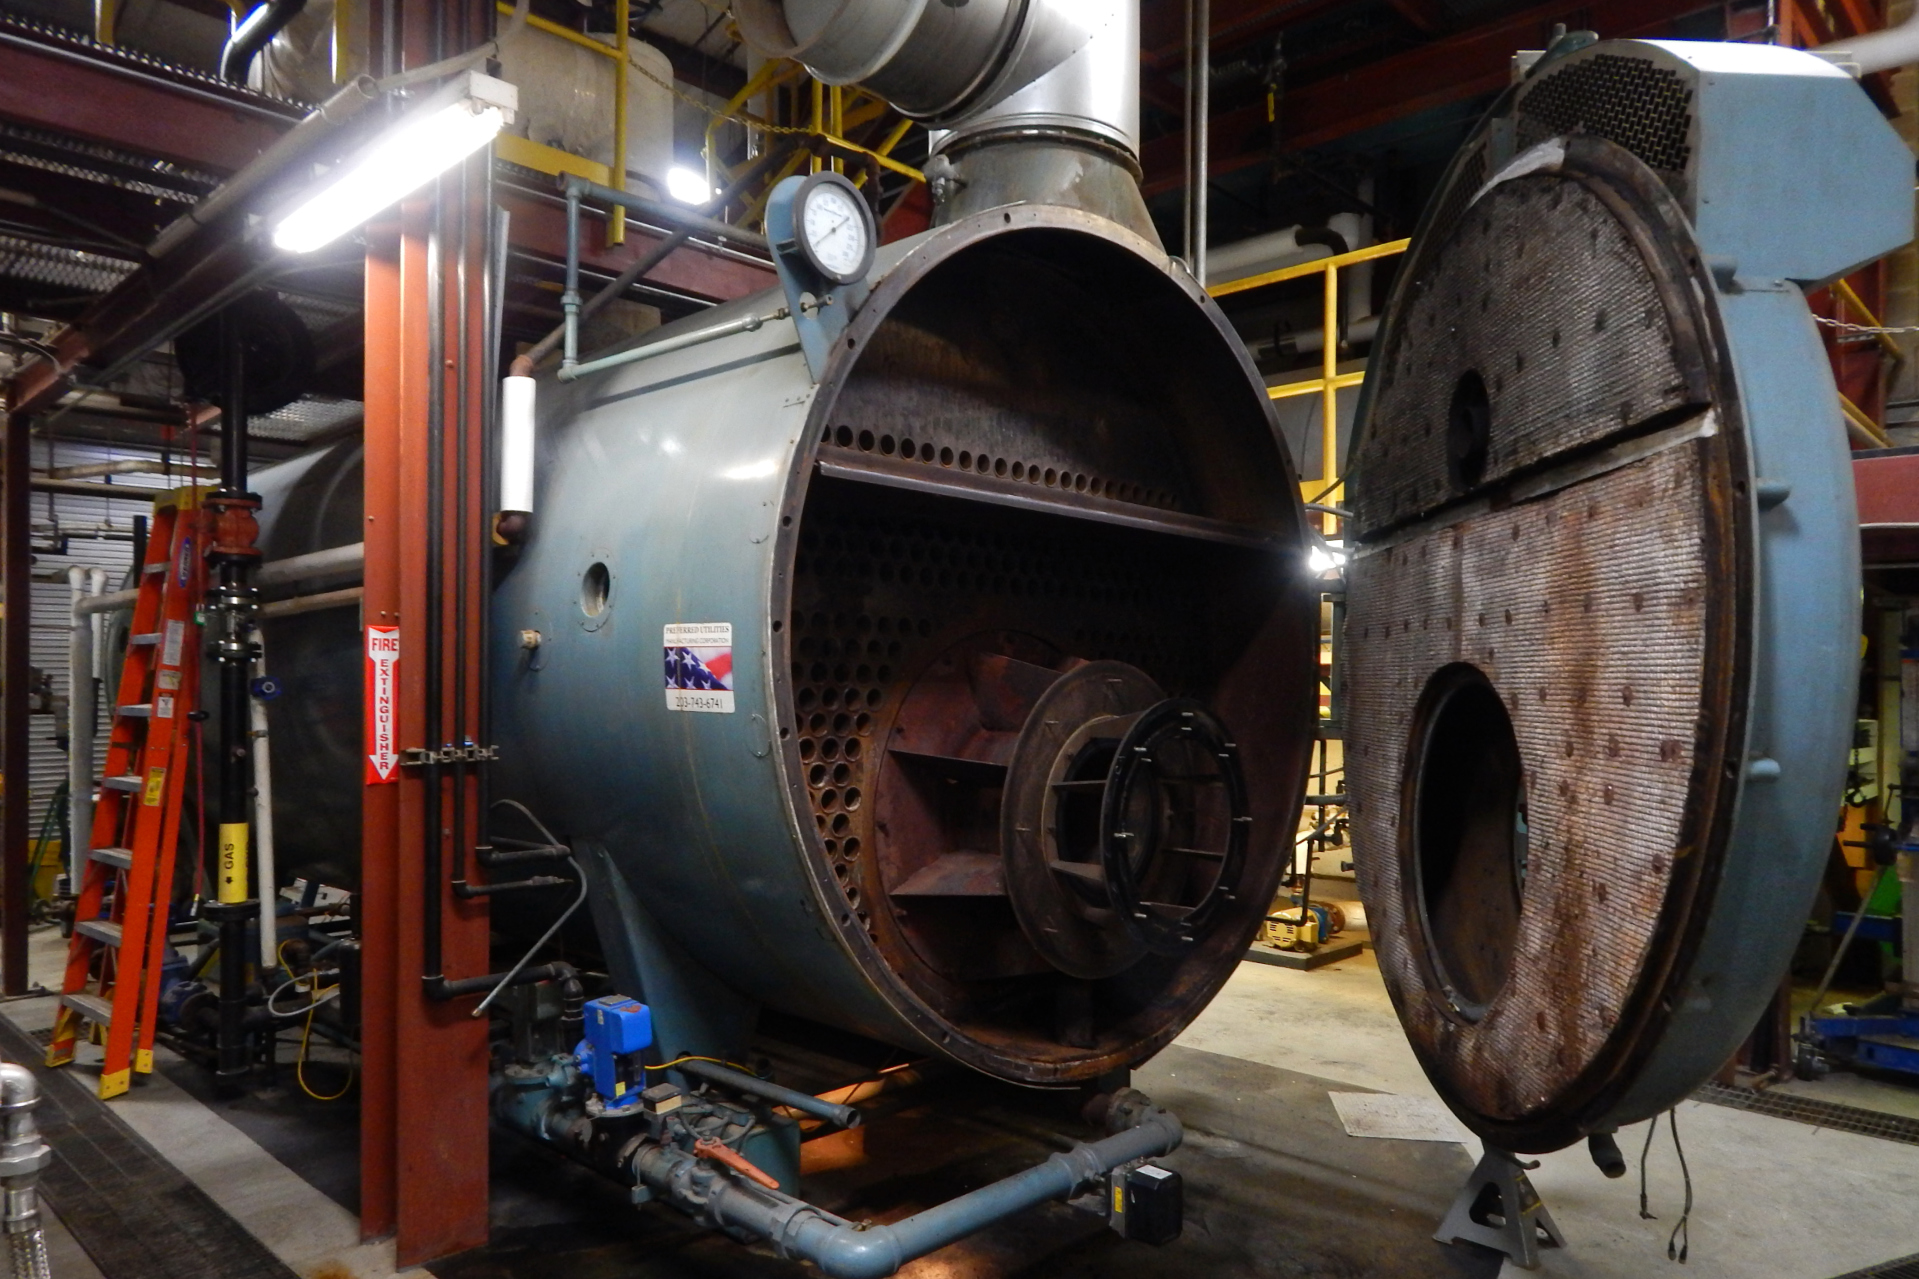 The campus steam plant's Boiler No. 3 will soon be equipped to burn a waste vegetable oil product called LR-100. (Doug Hubley/Bates College)